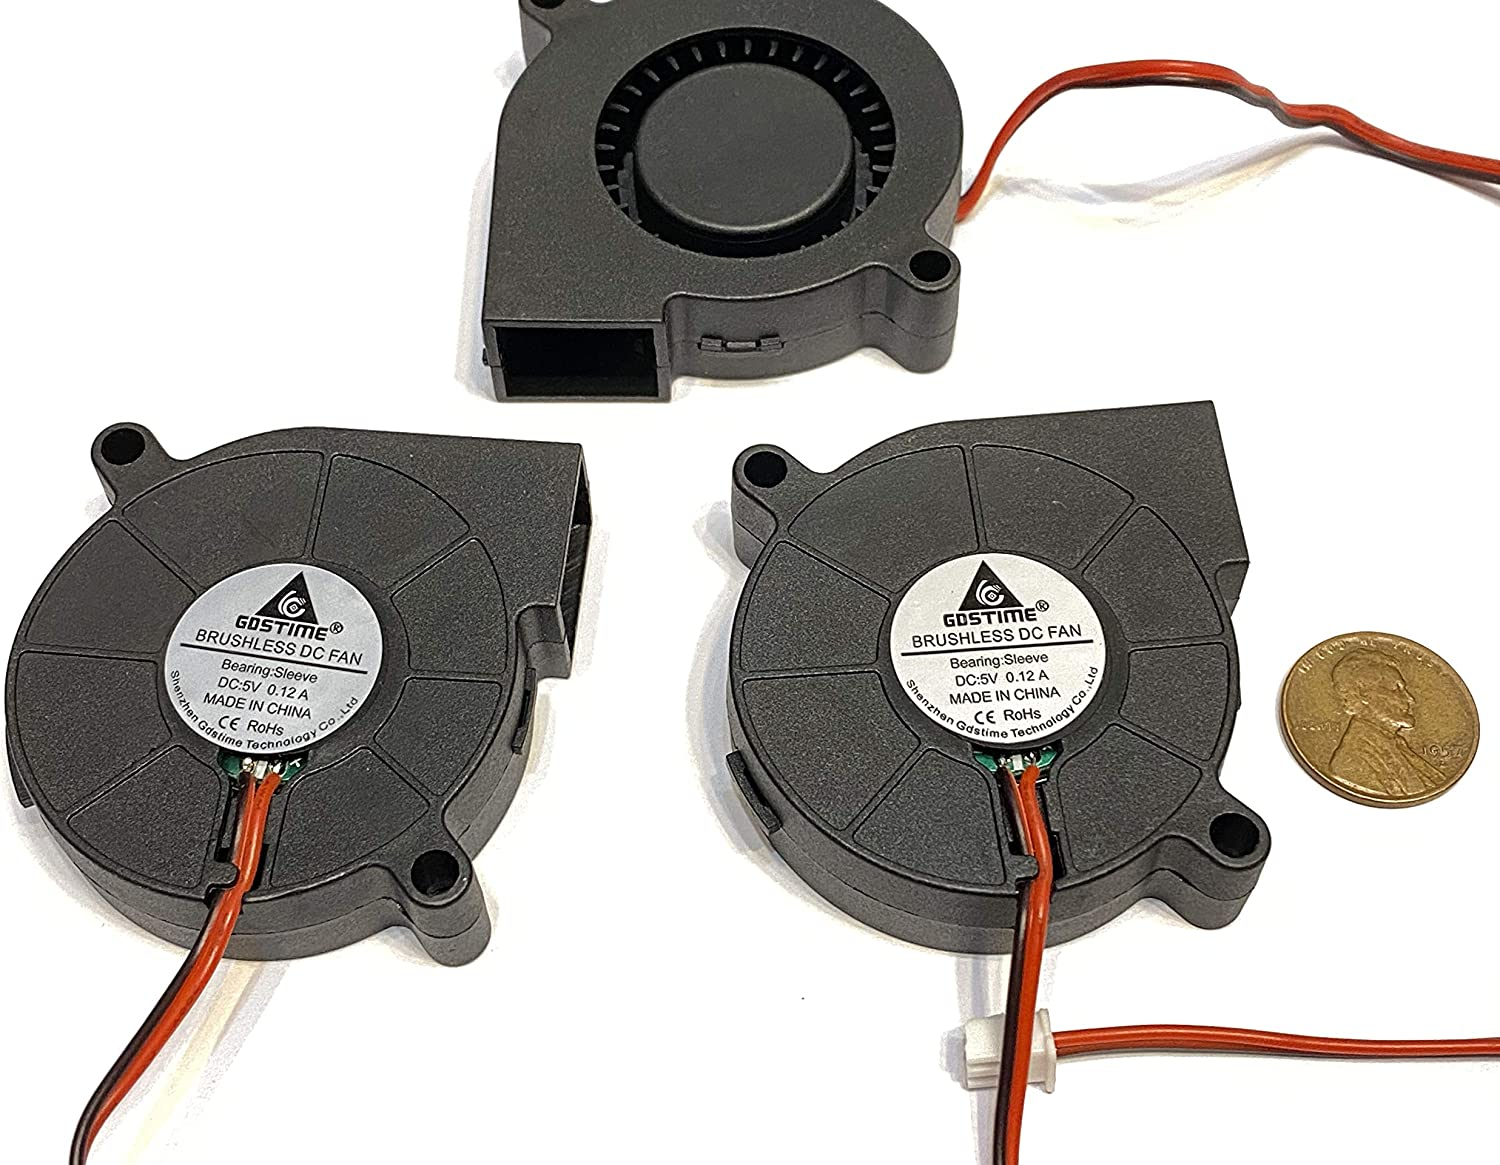 3 Pieces GDSTime Blower computer Fan 5V 2Pin 50mm 5015 50mm x 15mm 5cm A9